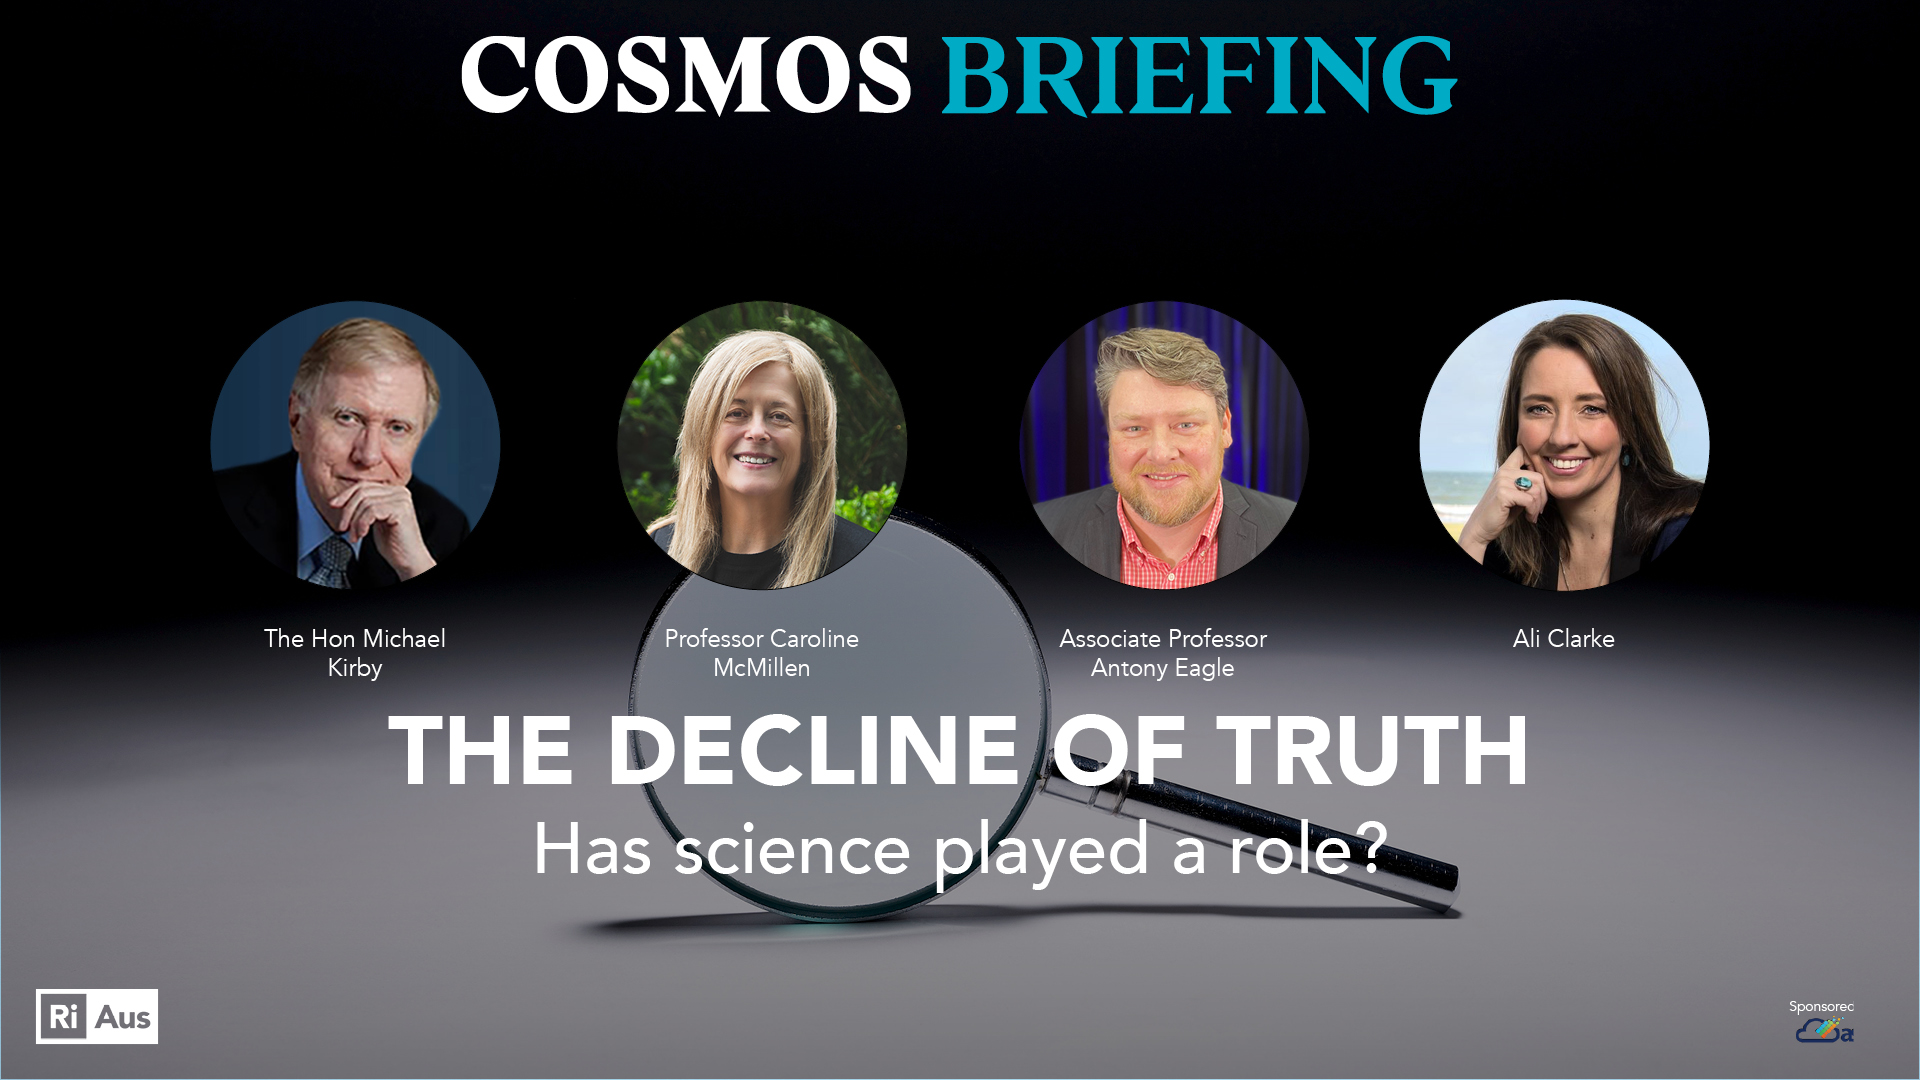 Cosmos briefing: the decline of truth